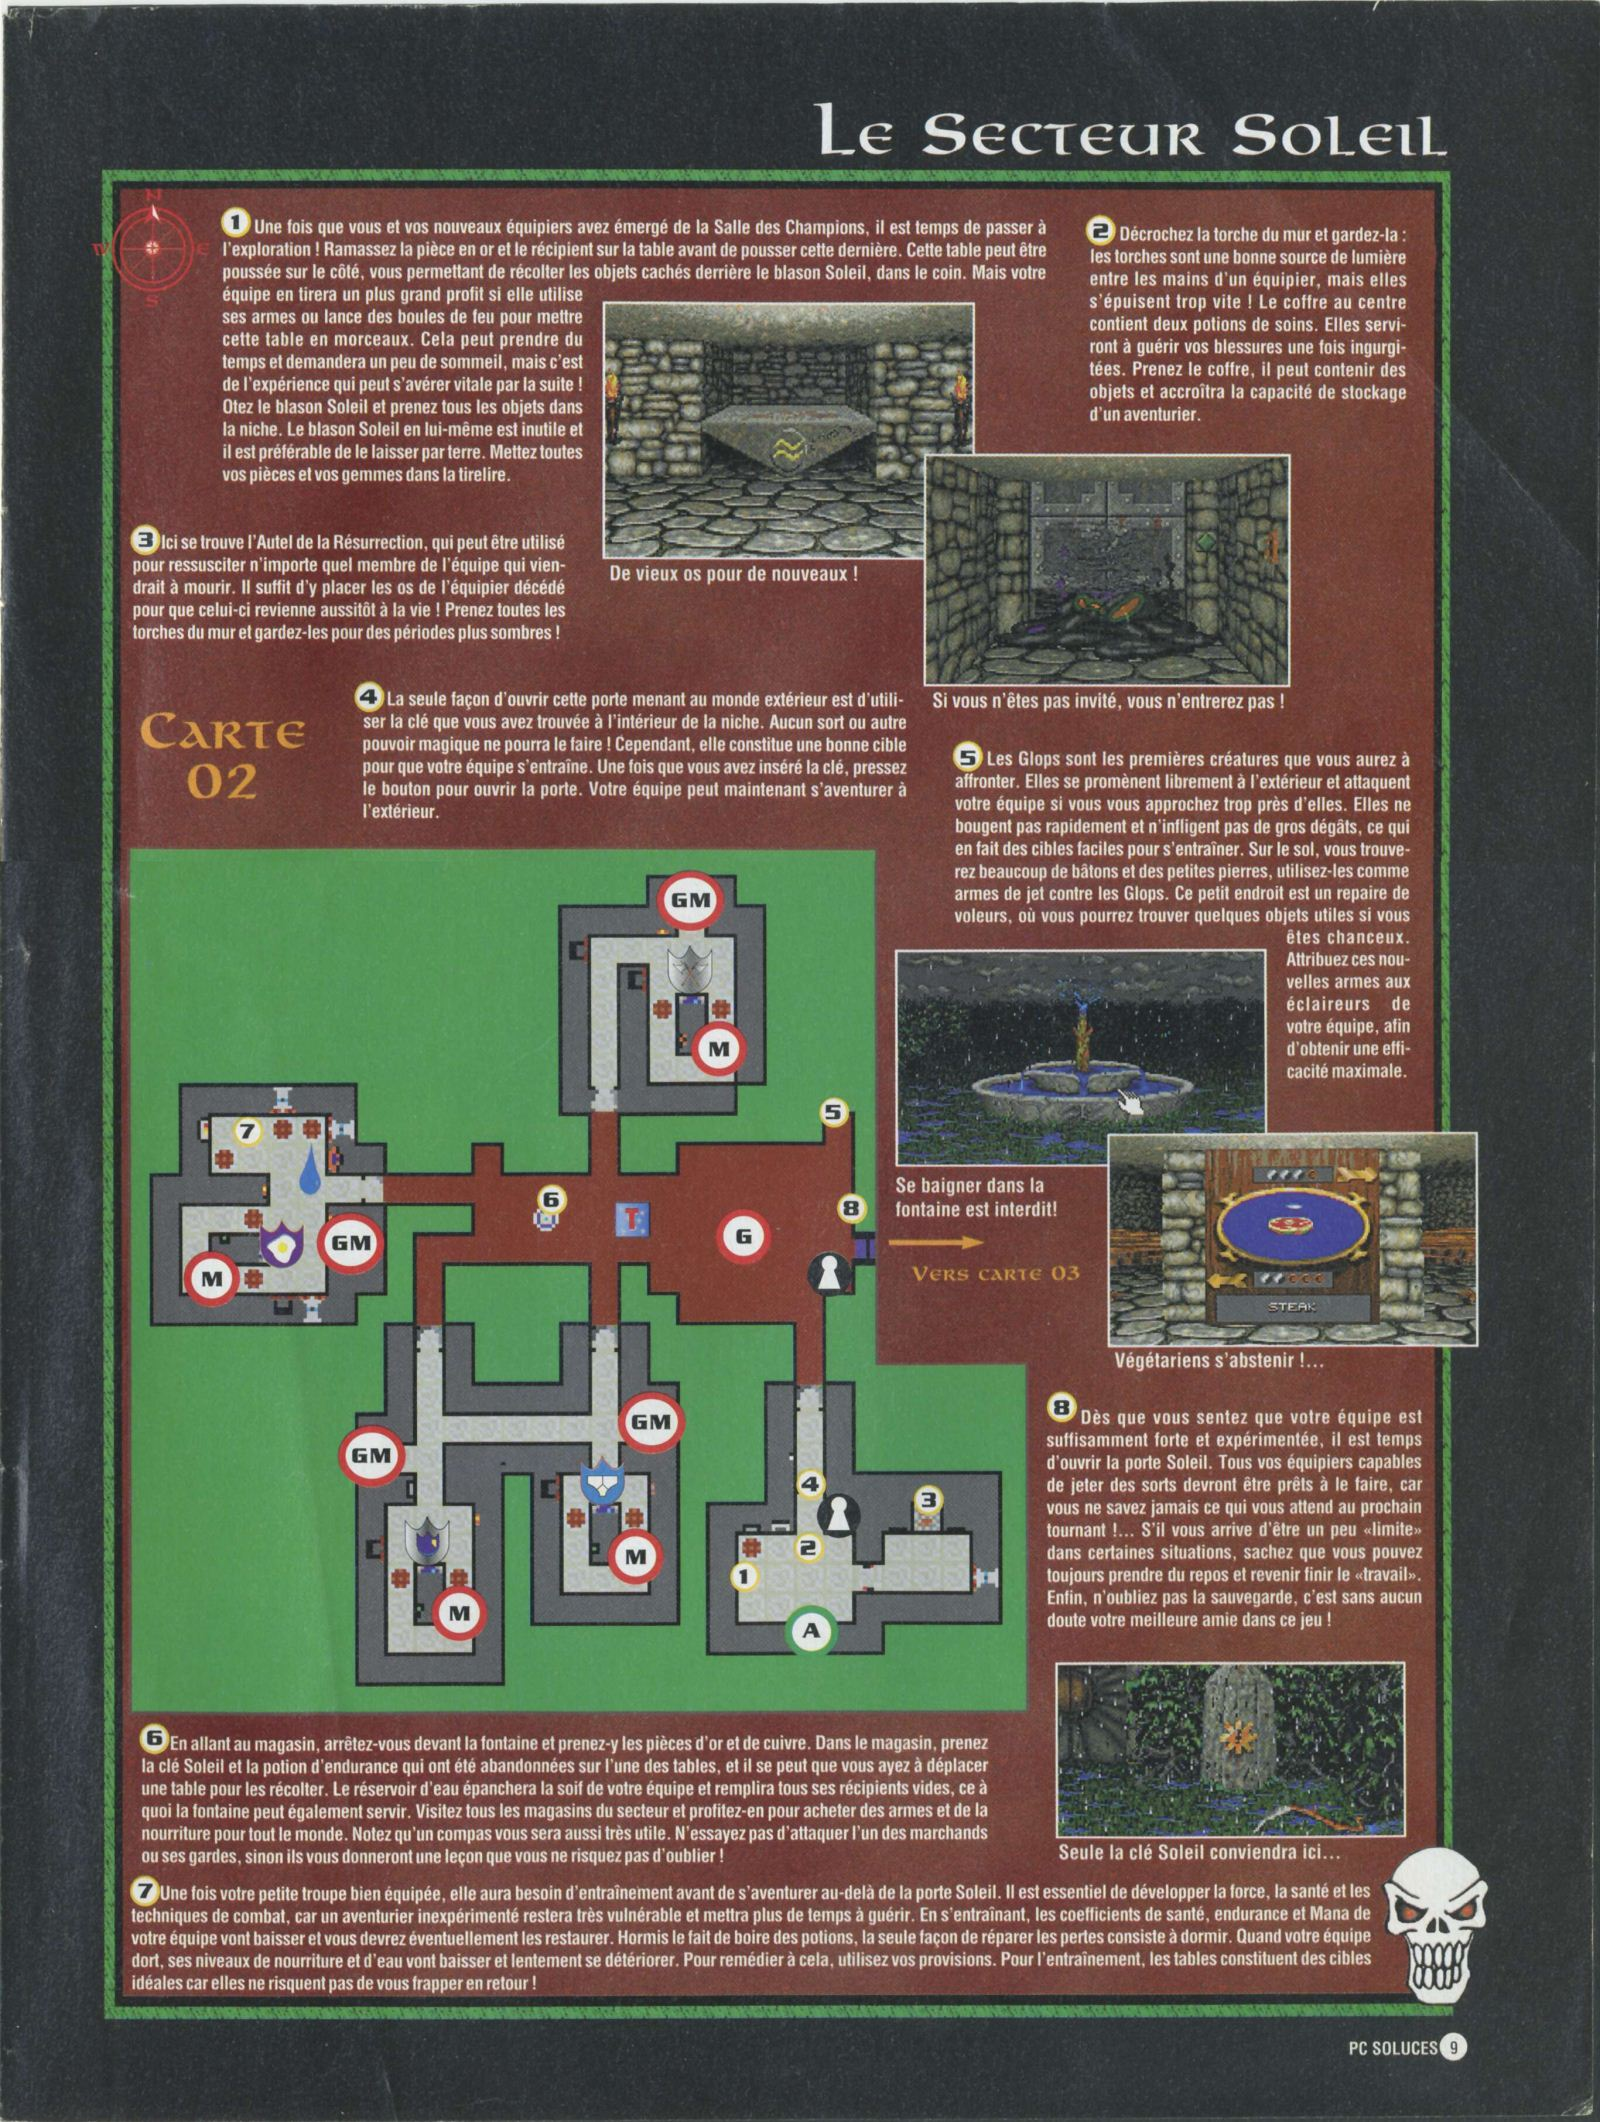 Dungeon Master II solution published in French magazine &amp;#039;PC Soluces&amp;#039;, Issue#1, February-March 1996, Page09